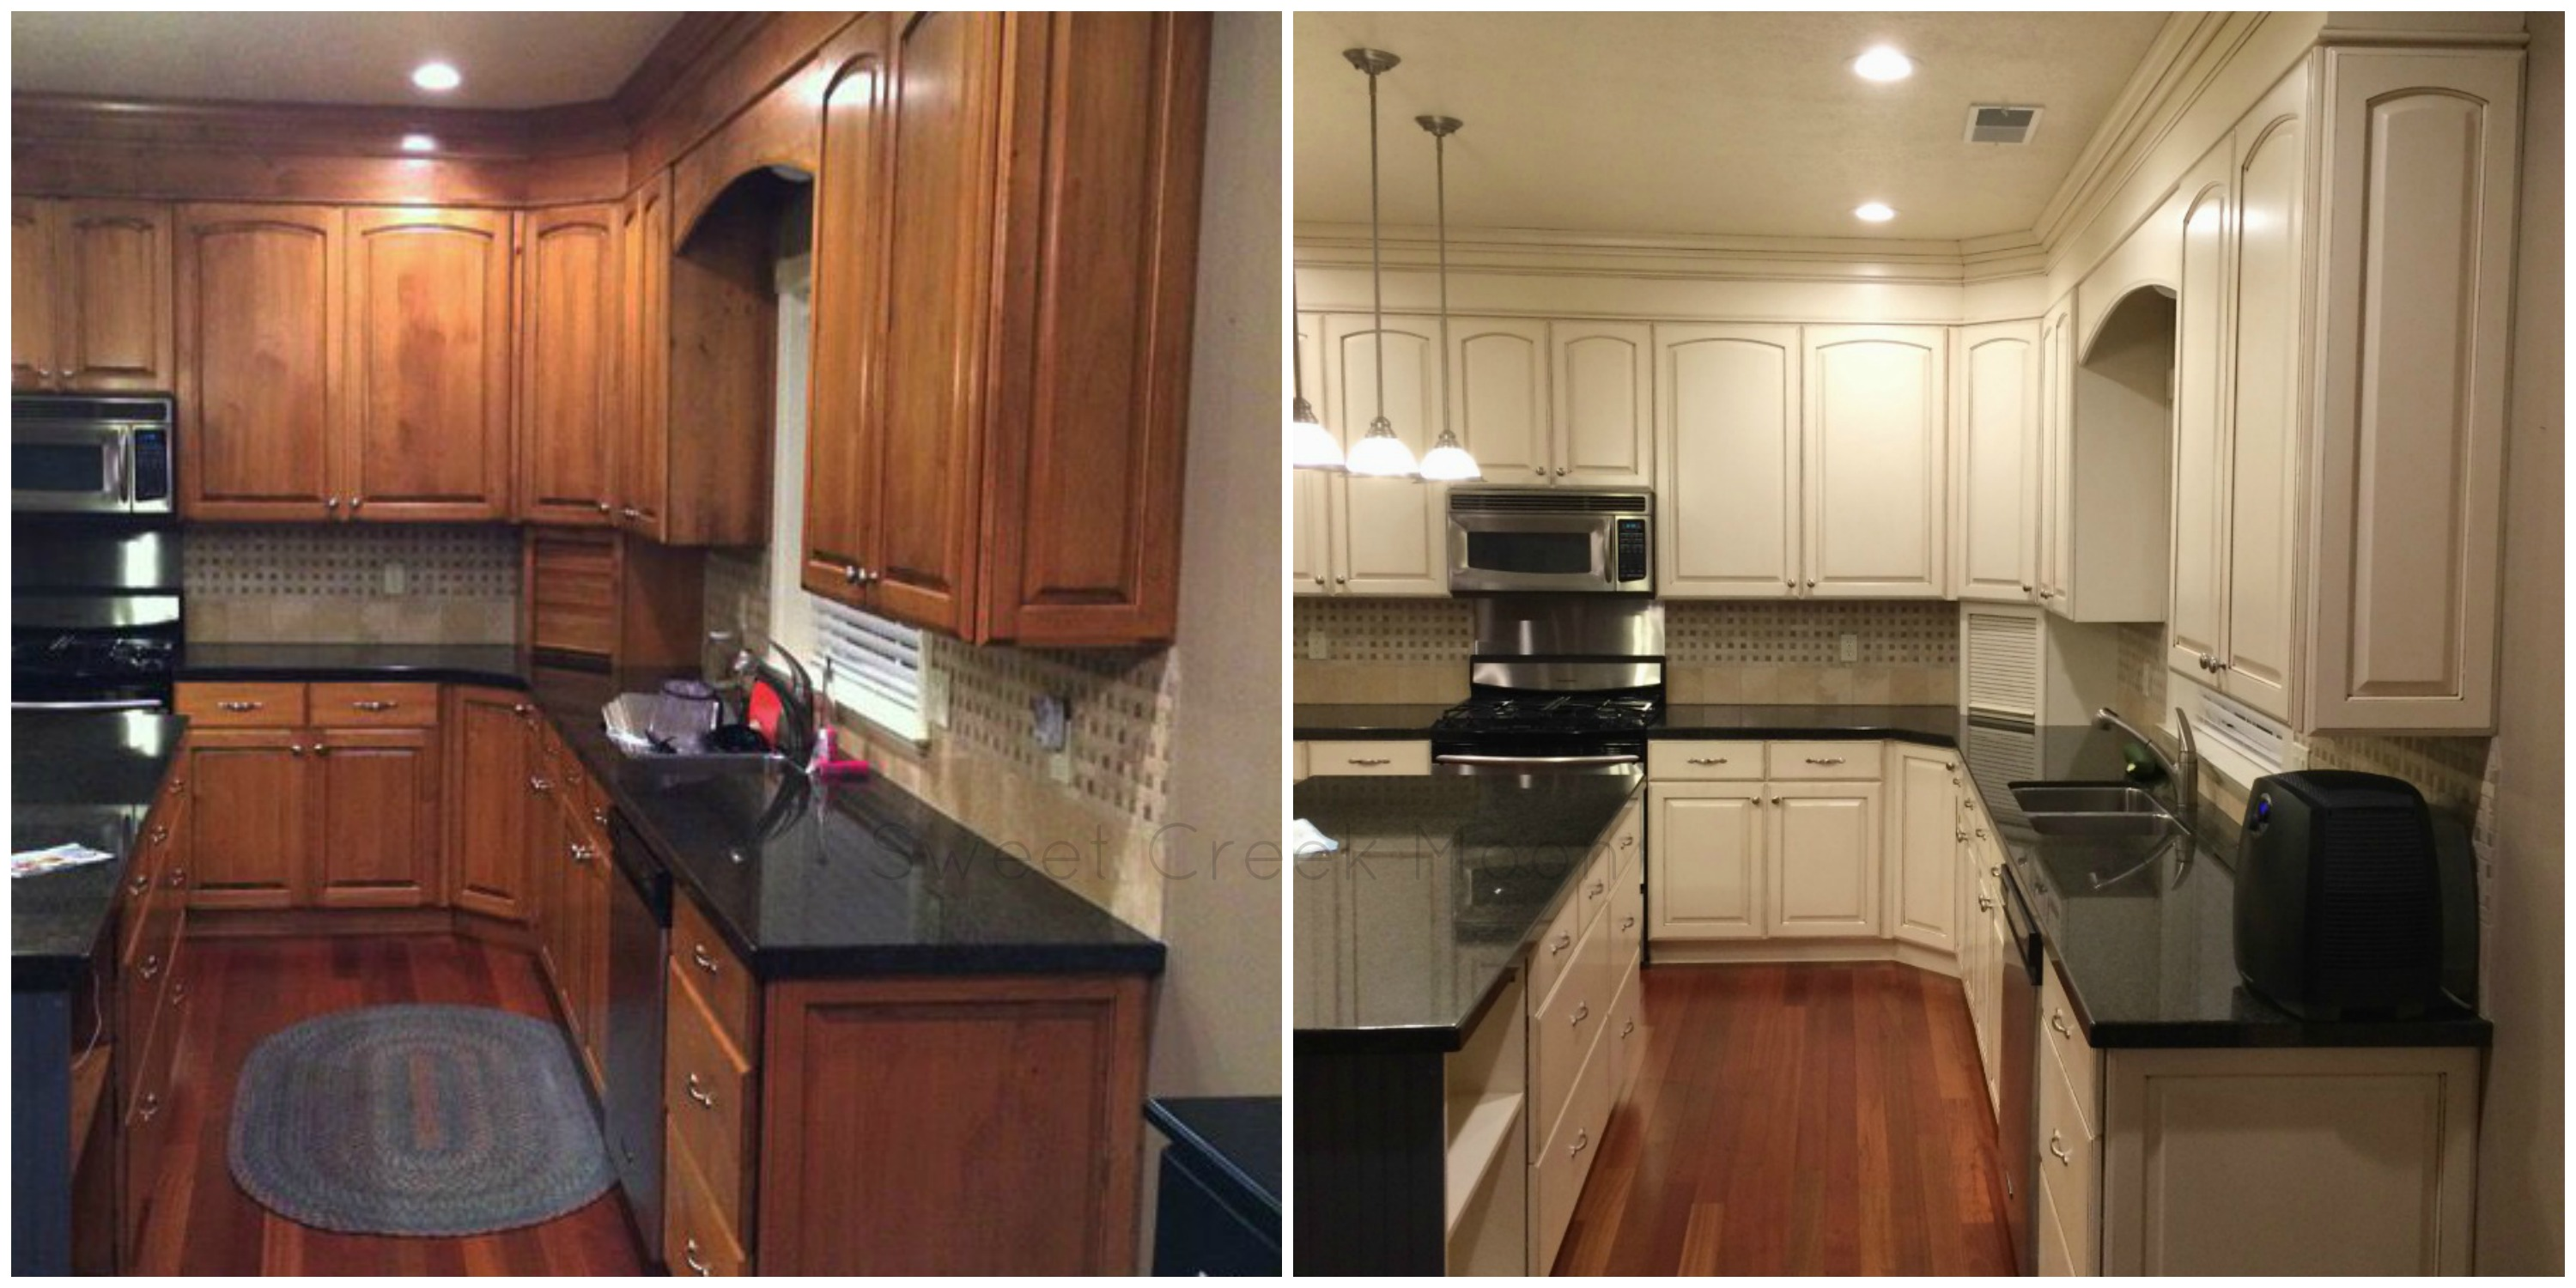 Kitchen Cupboard Makeover Before And After Of Kitchen Cabinet Makeovers Before And After 10 Diy Kitchen